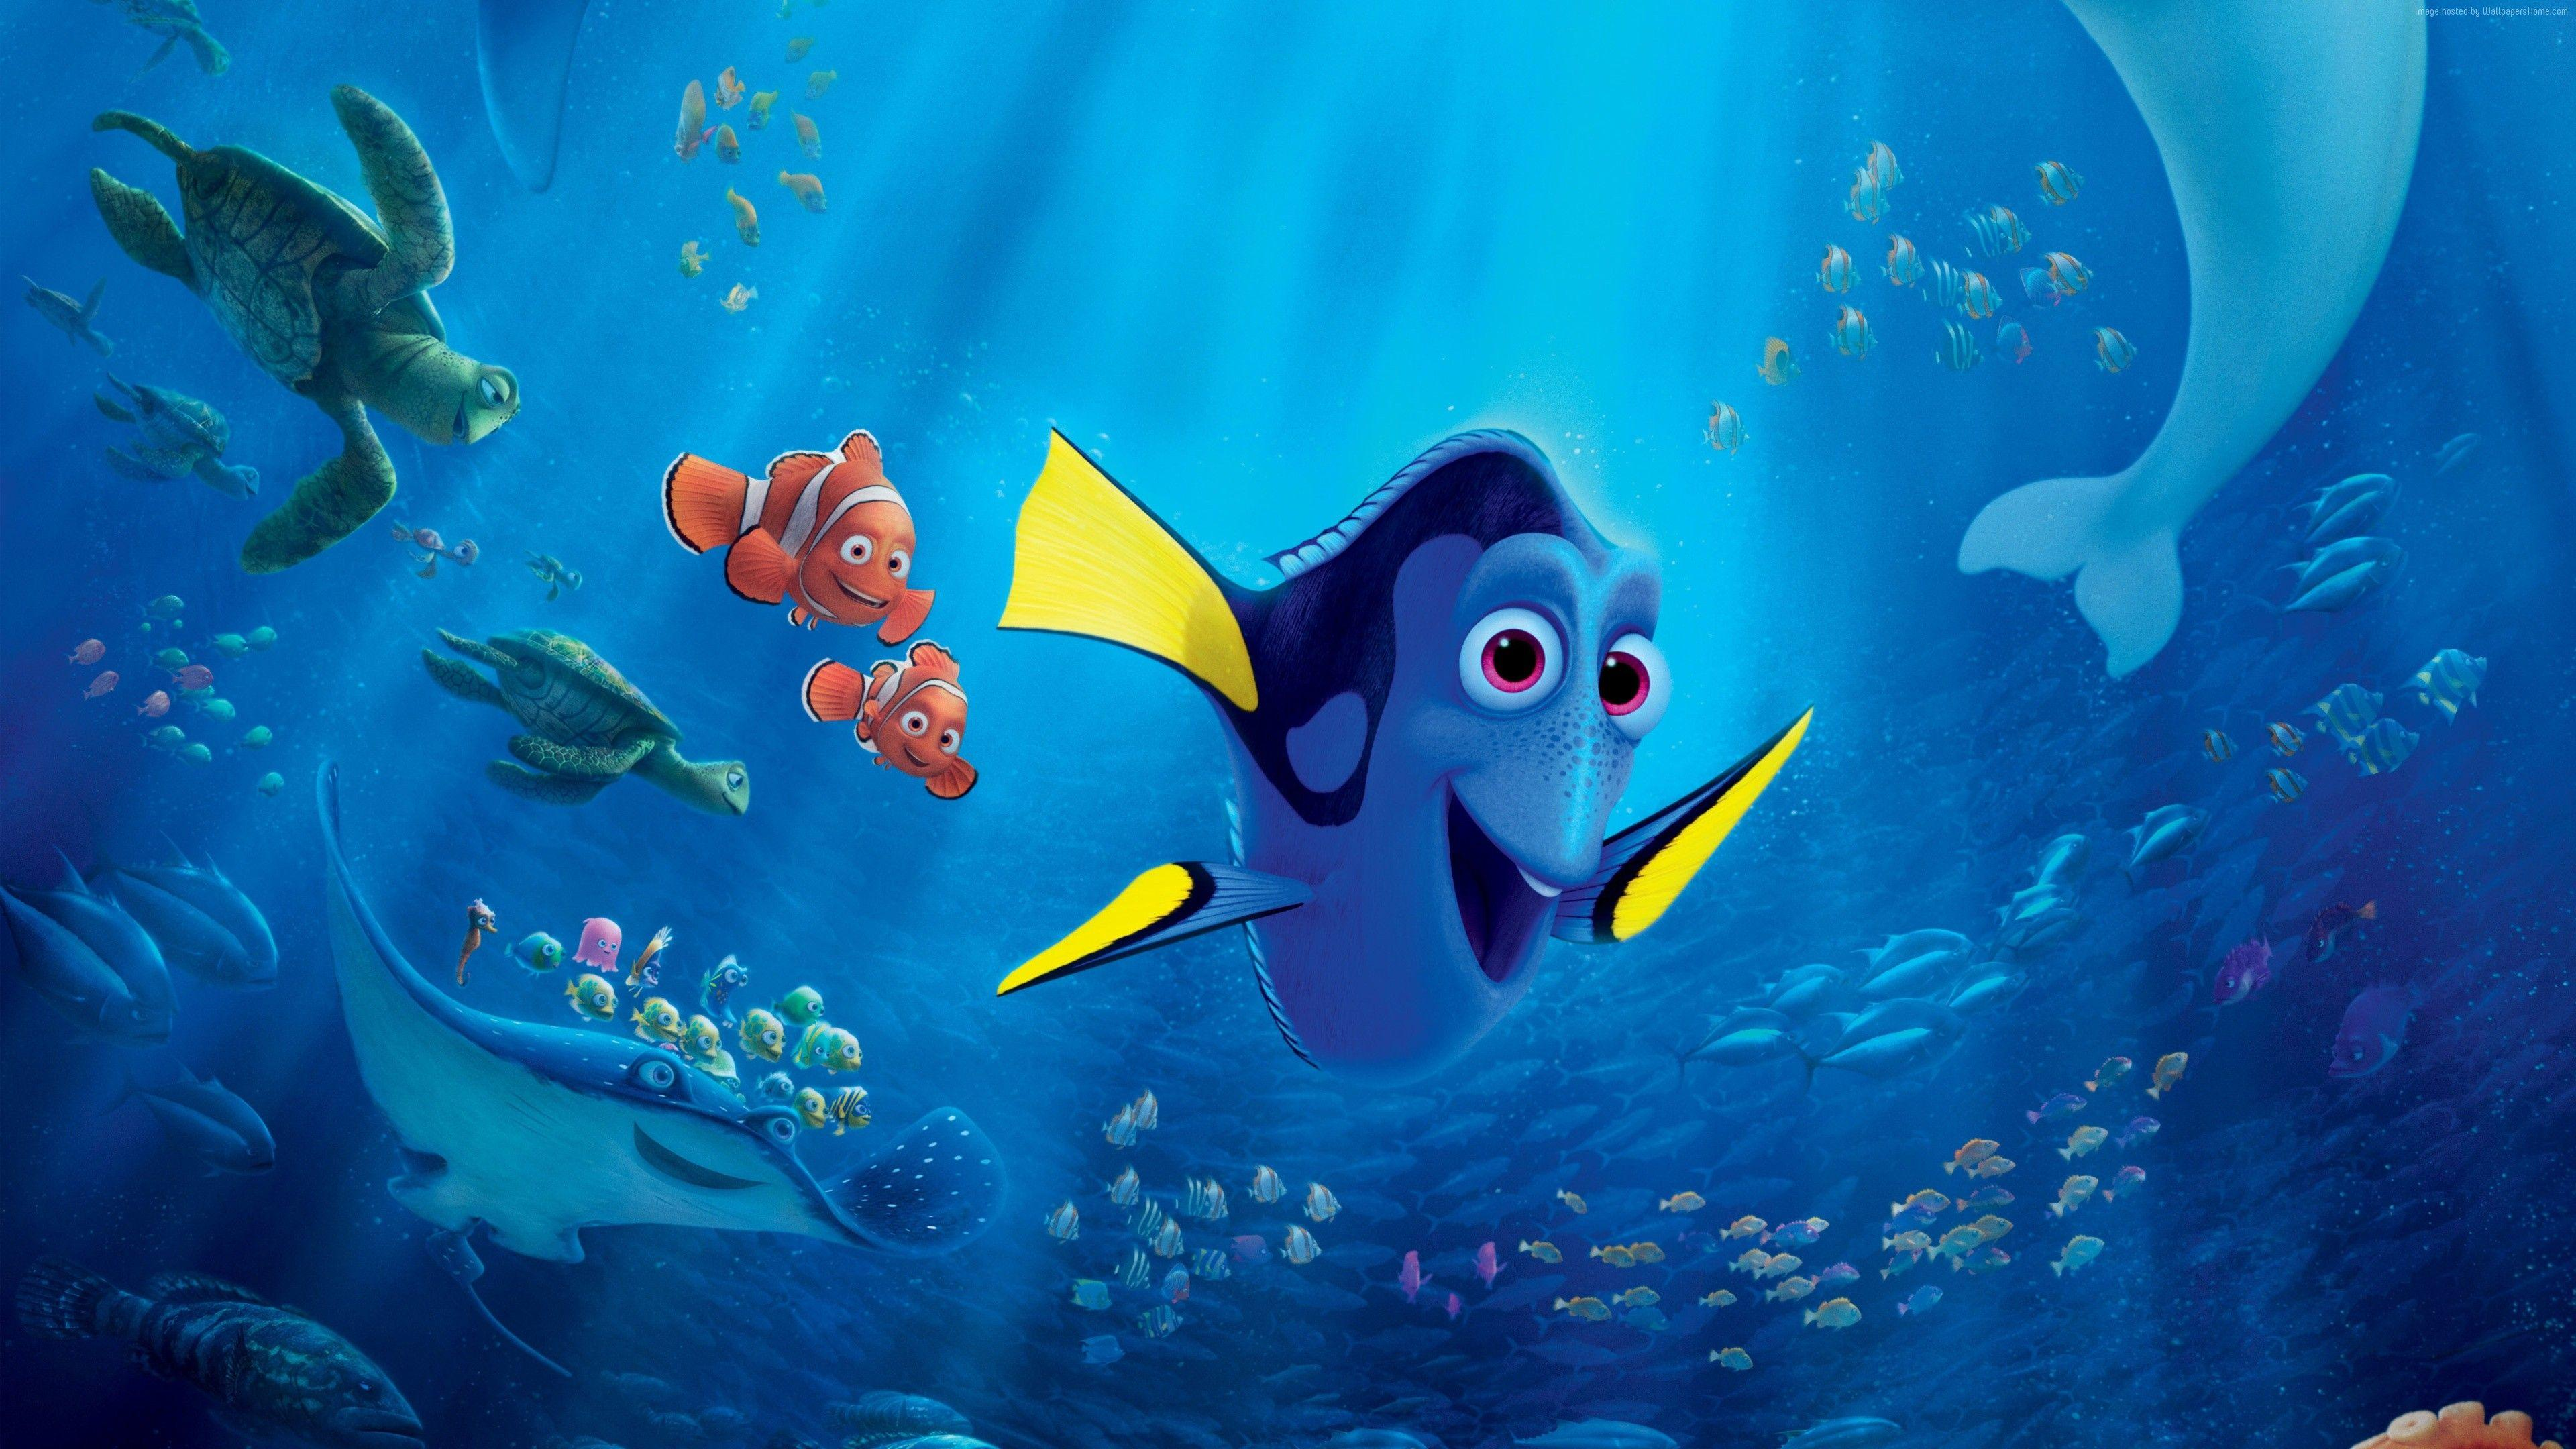 Finding Dory Wallpaper, Movies: Finding Dory, hank, nemo, fish